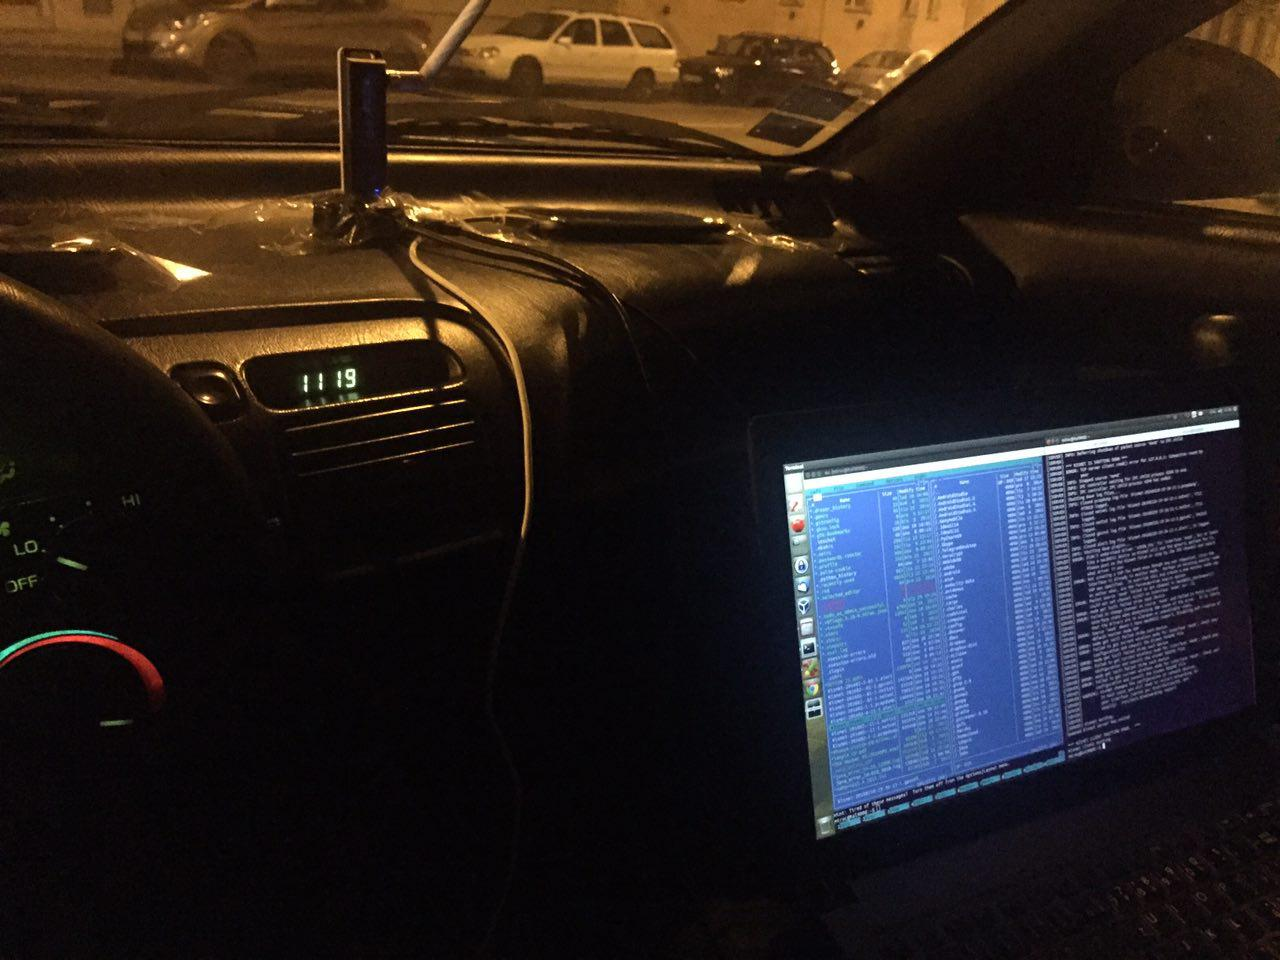 Wardriving setup